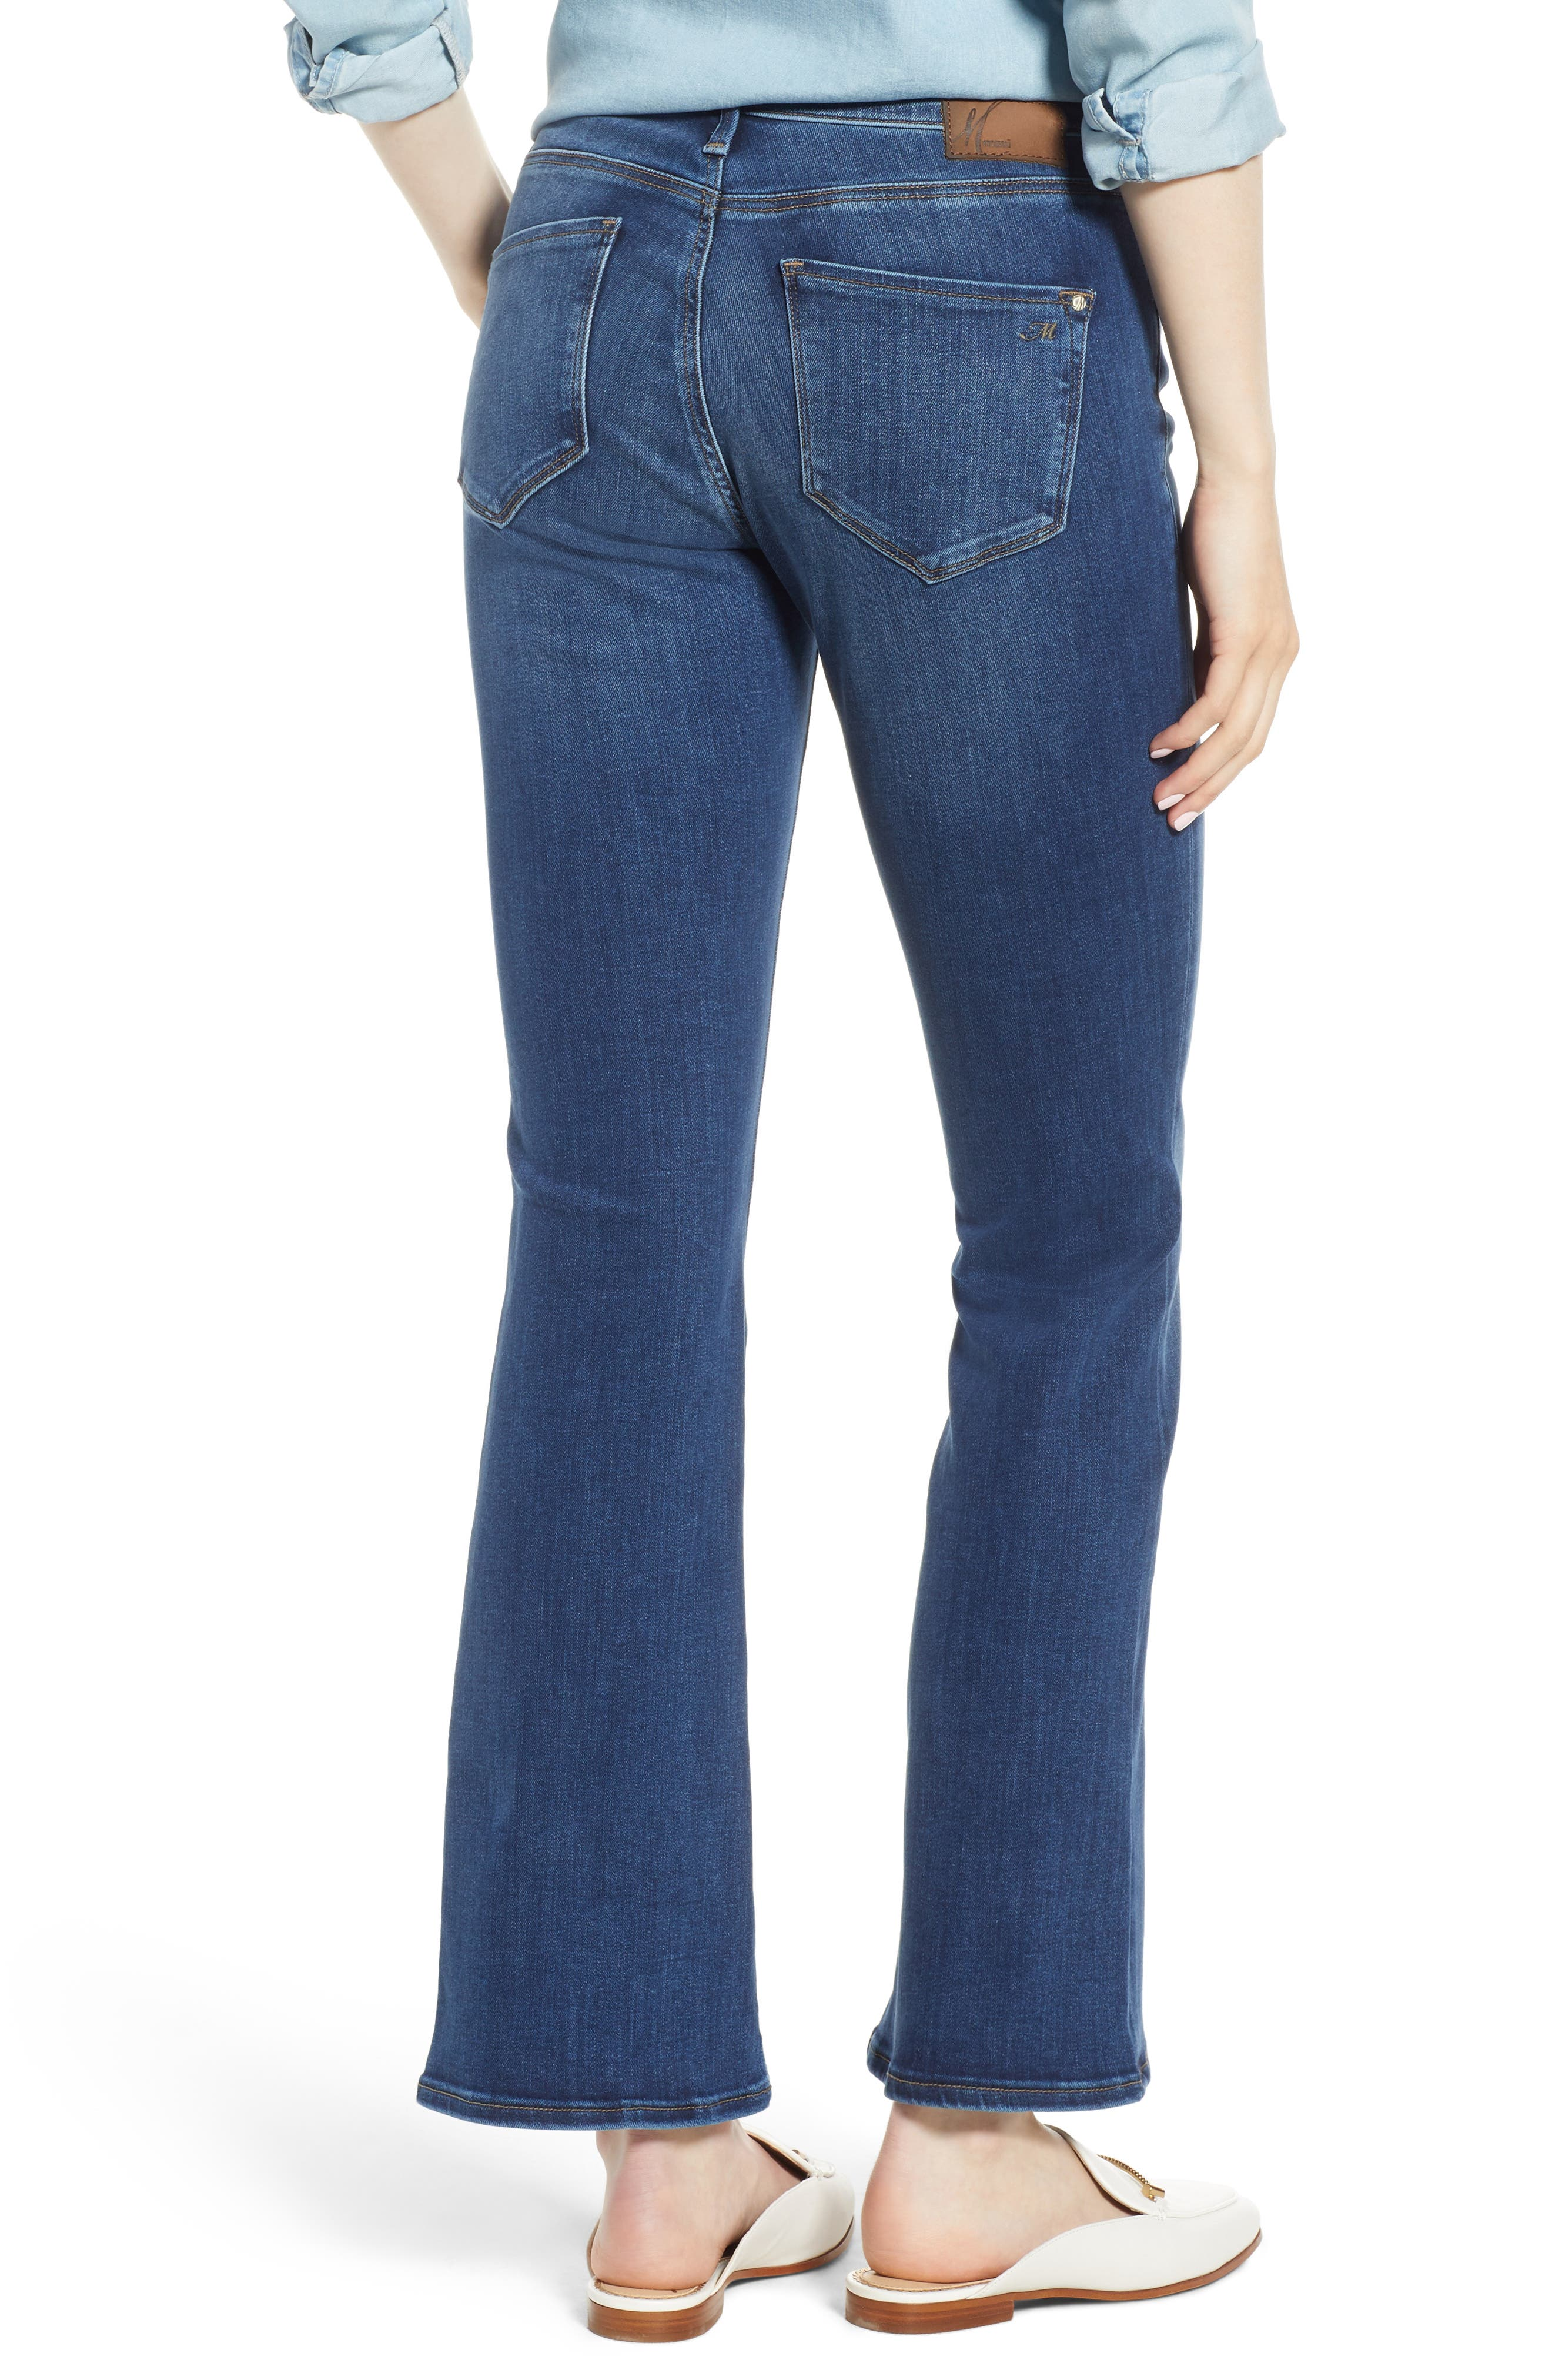 Molly Classic Bootcut Jeans,                             Alternate thumbnail 2, color,                             INDIGO SUPERSOFT